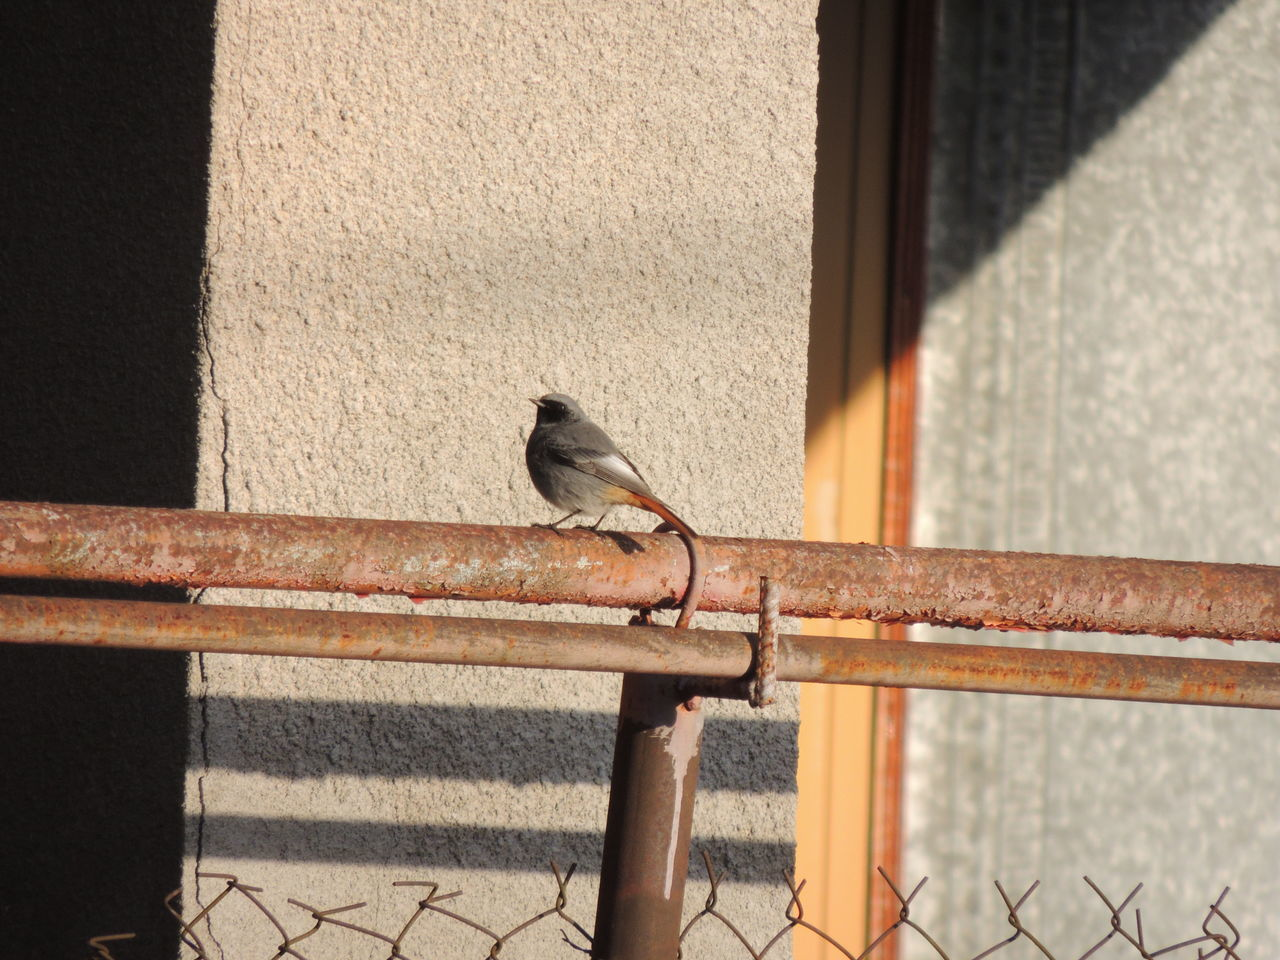 one animal, animal themes, bird, animals in the wild, animal wildlife, perching, sunlight, railing, day, outdoors, no people, retaining wall, nature, sparrow, building exterior, architecture